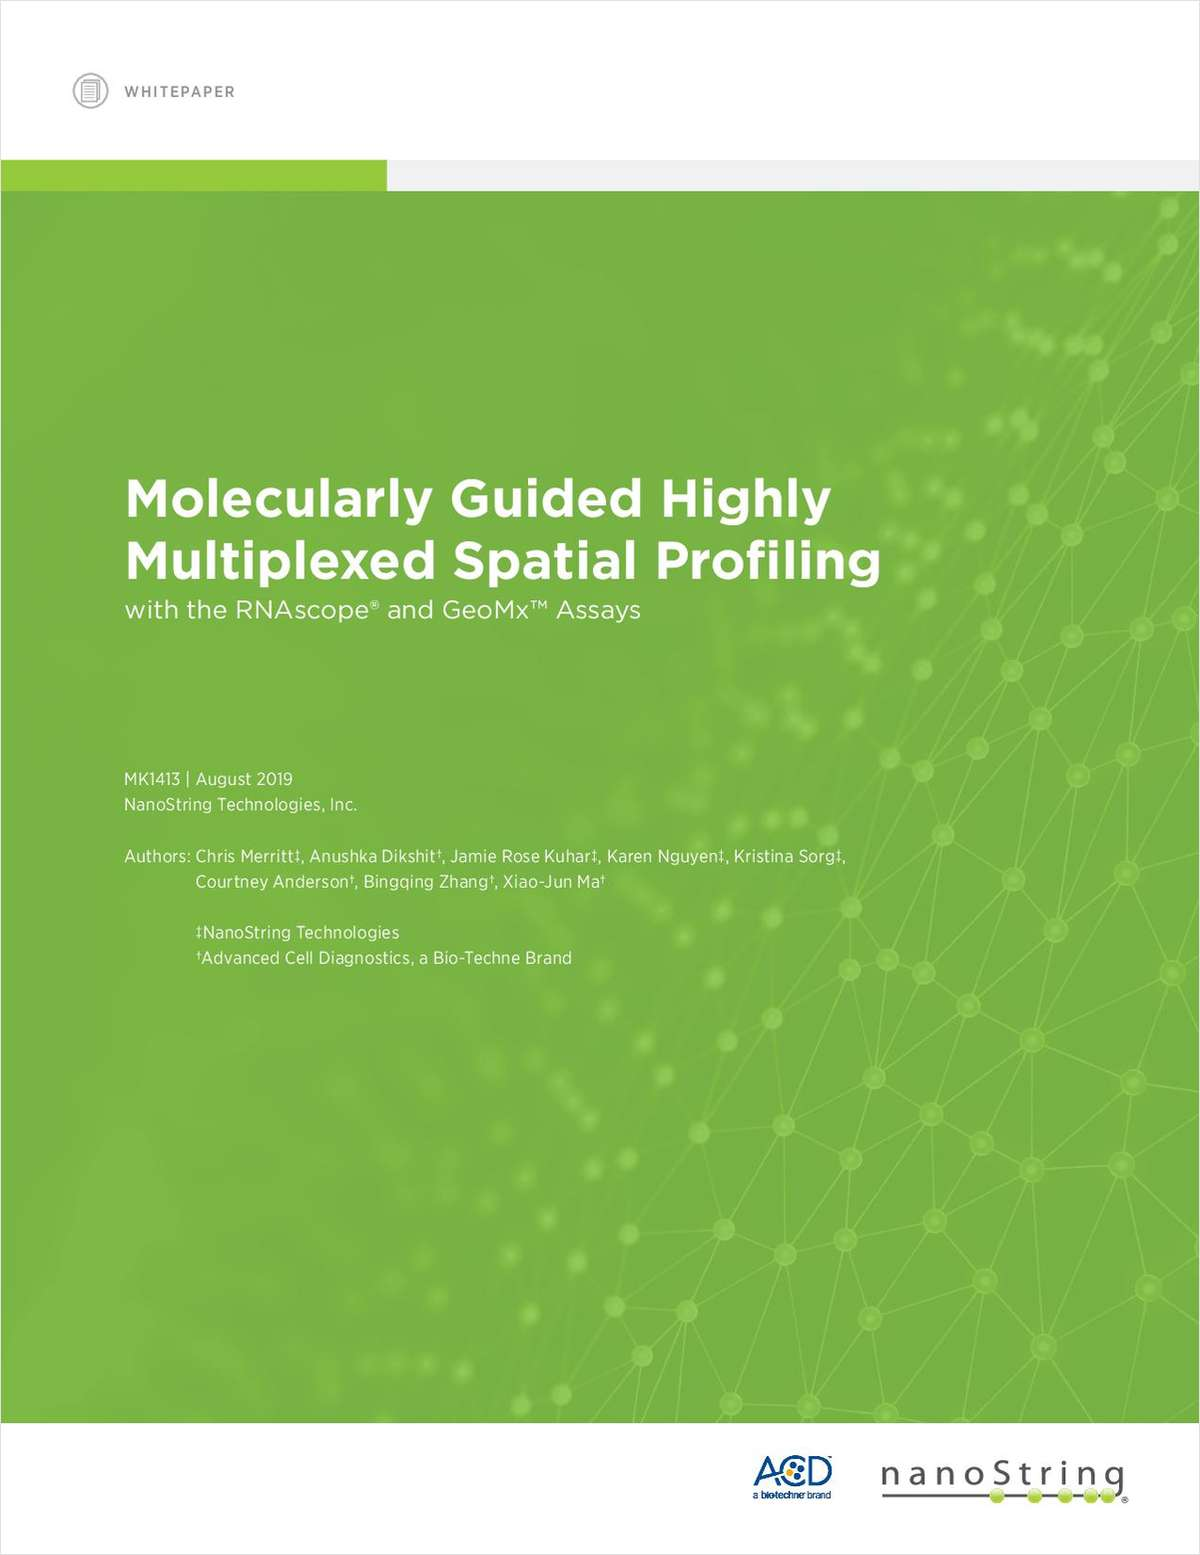 Molecularly Guided Highly Multiplexed Spatial Profiling